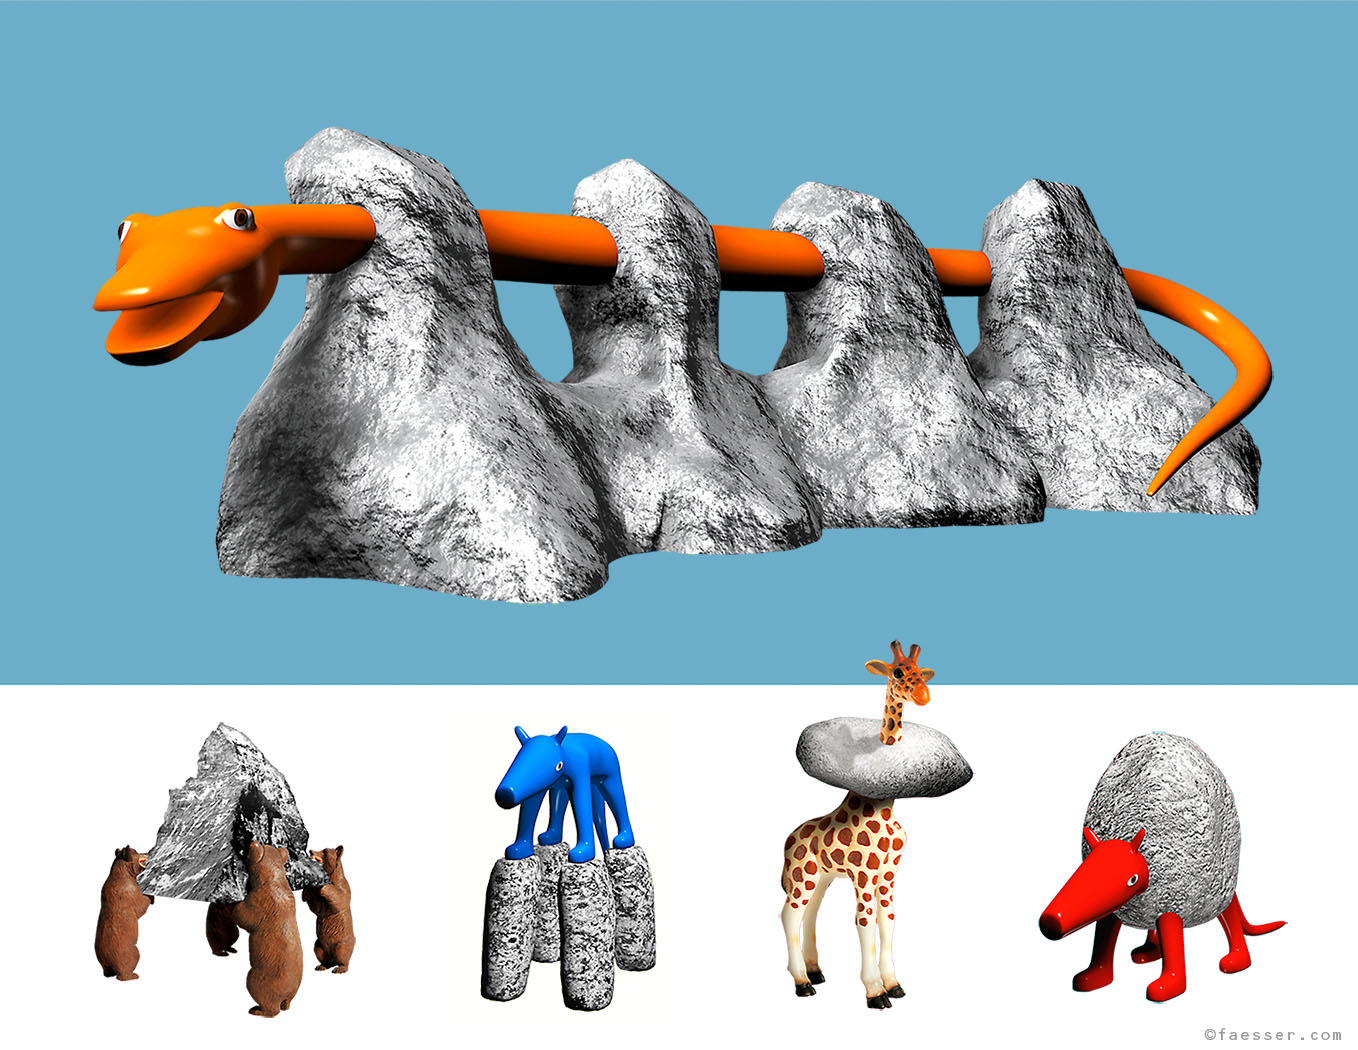 Five Swiss Mountain Playground mutants as climbing sculptures for children; artist Roland Faesser, sculptor and painter 2003